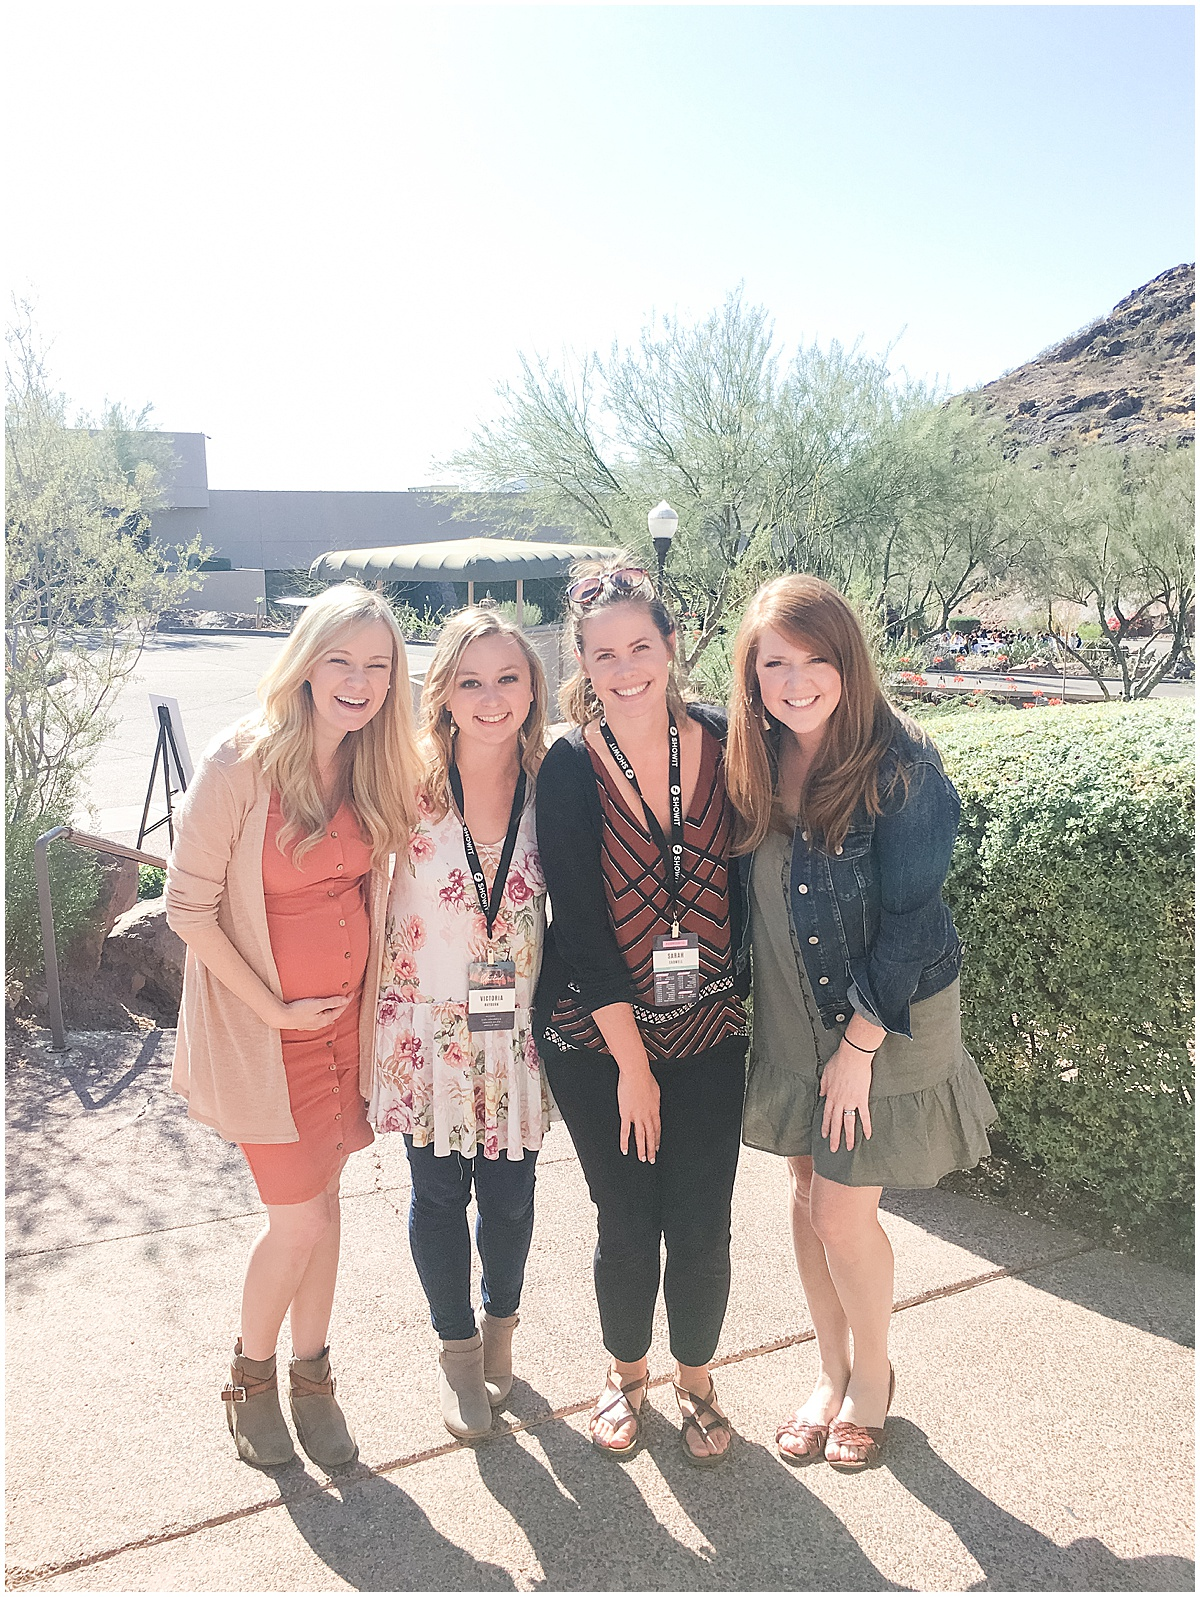 Amy Demos, Victoria Rayburn, Sarah Cadwell, and Katelyn James at Showit United 2019